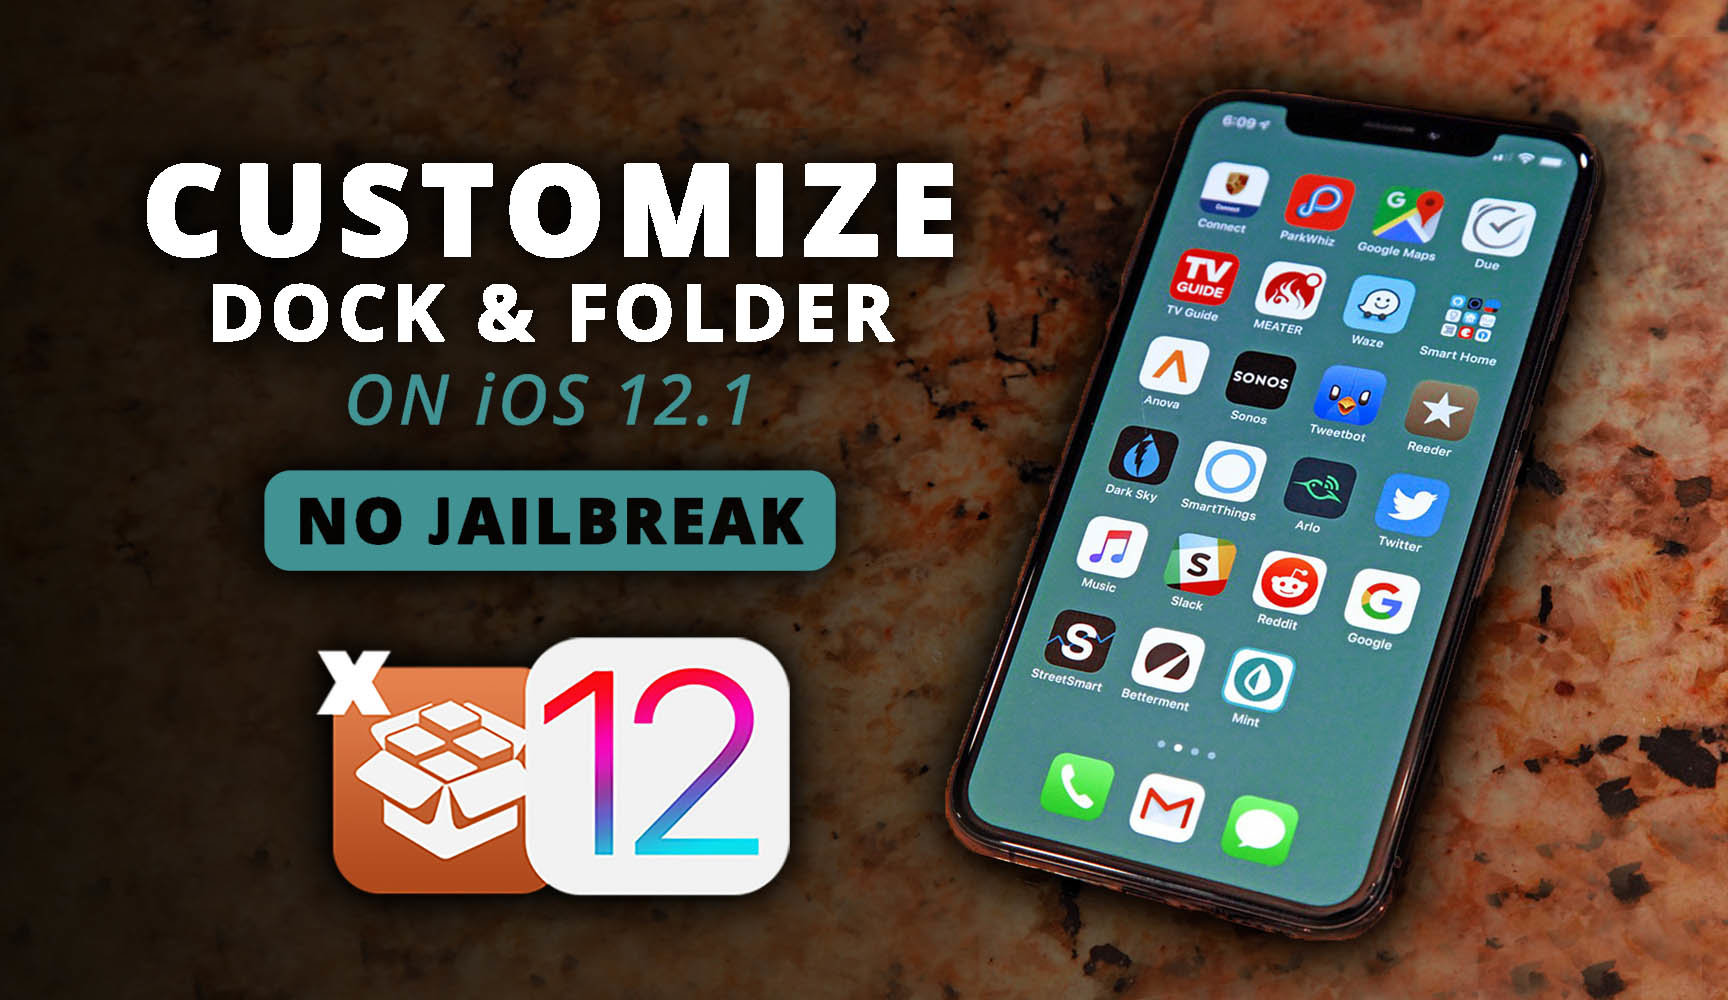 How to Customize The Dock & Folder on iOS 12.1